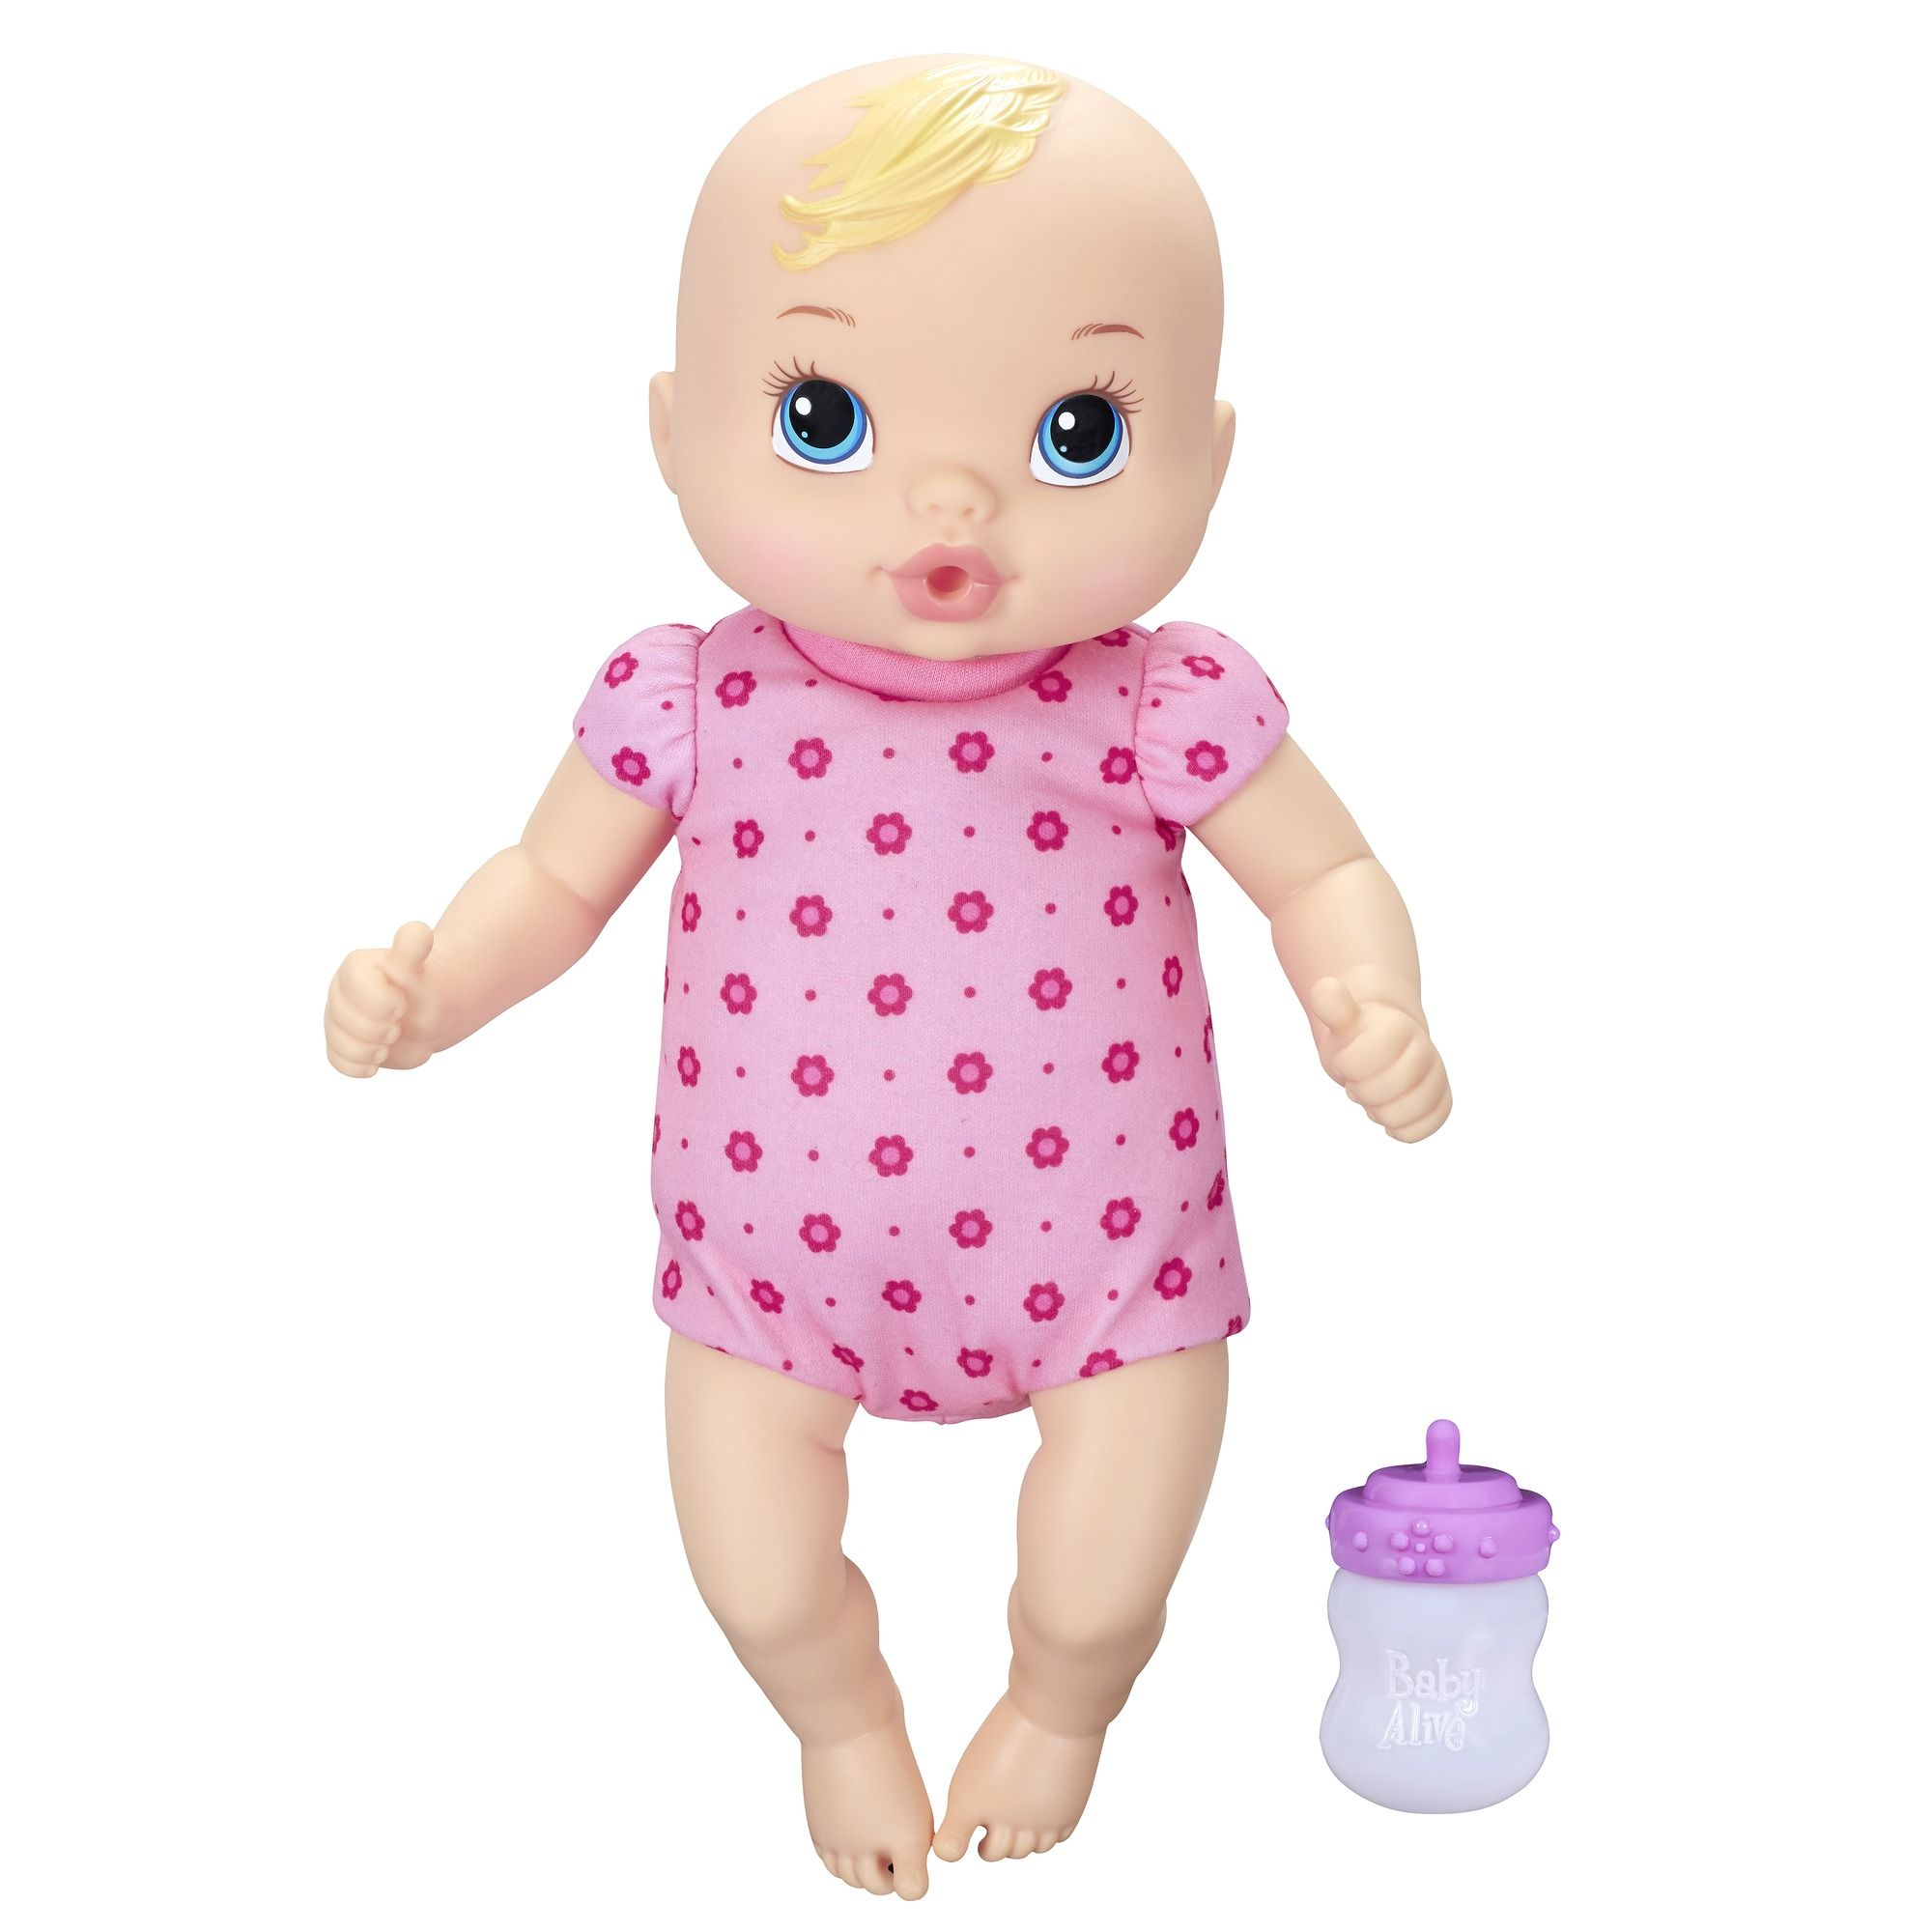 Baby Alive Luv A N Snuggle Baby Blonde Multi Color Baby Alive Dolls Best Baby Doll Realistic Baby Dolls